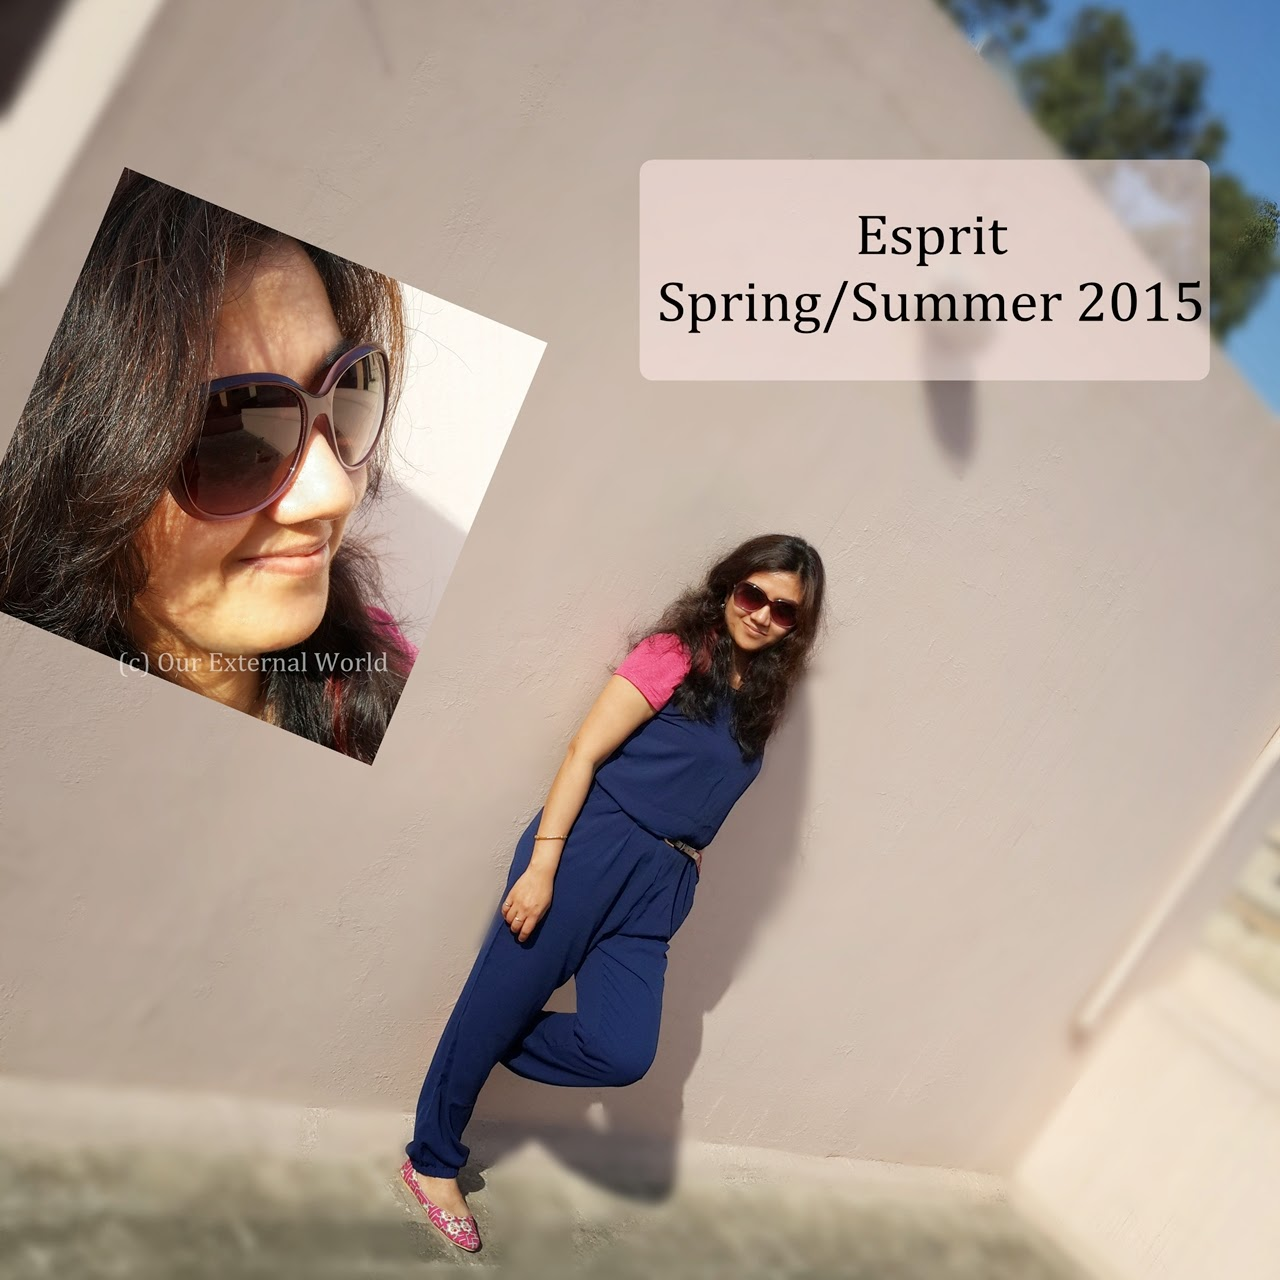 How To Style Your Sunglasses, Esprit Eyewear - Spring/Summer 2015, ET19427